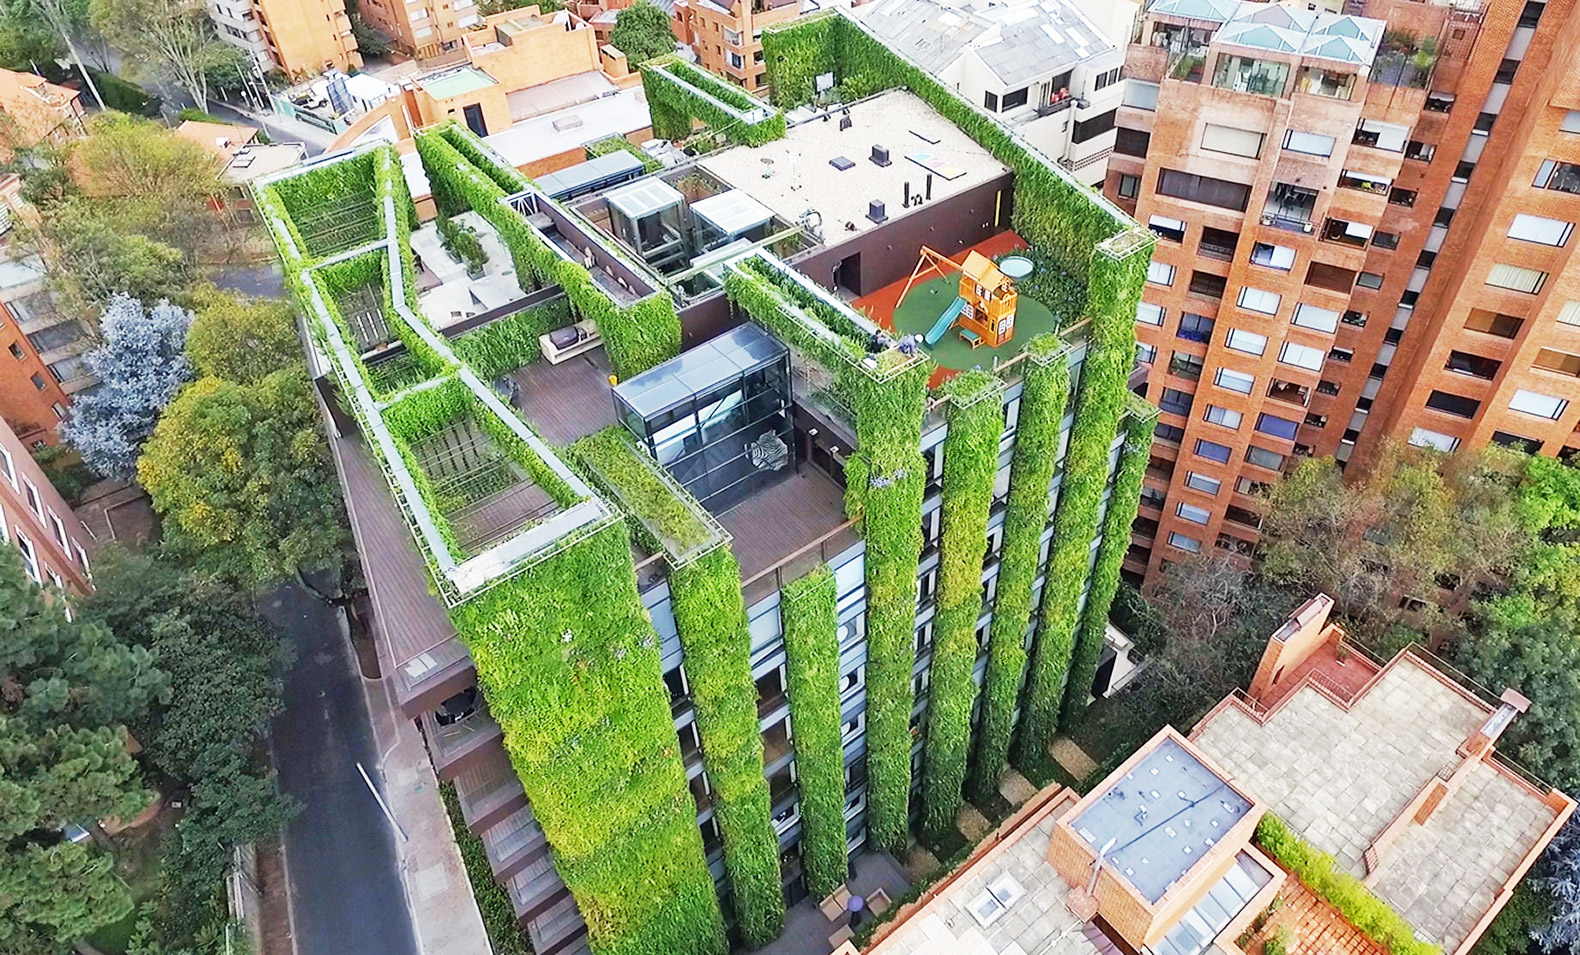 worlds largest vertical garden blooms with 85000 plants in the heart of bogota - Garden Design Birds Eye View